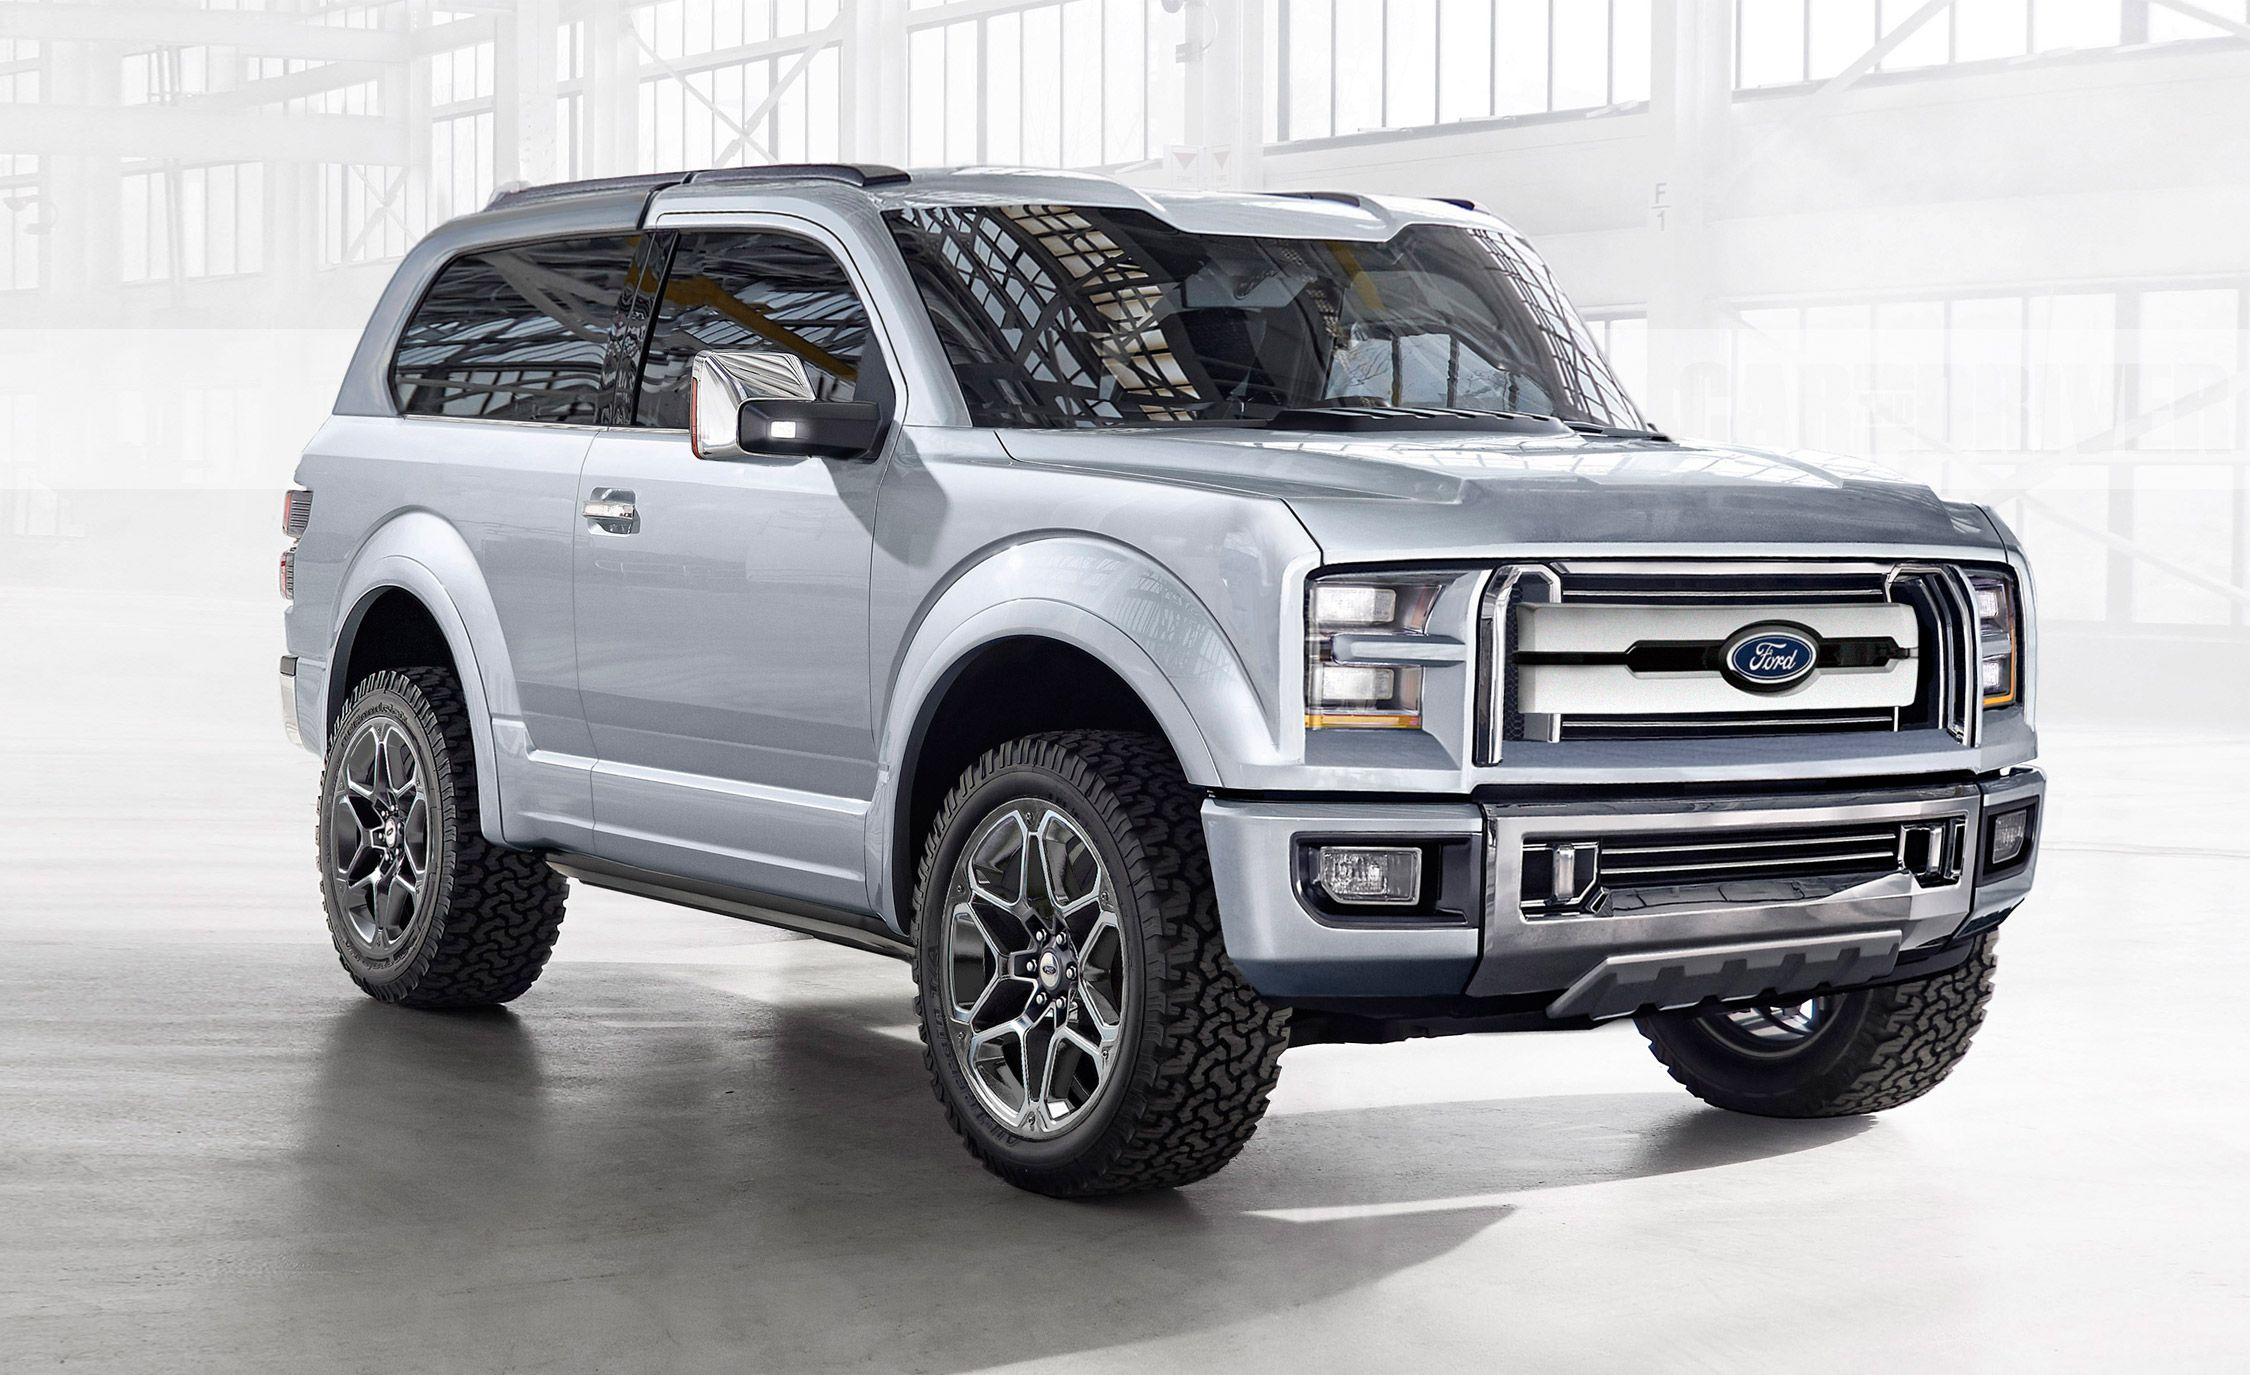 2020 Ford Bronco: Because The Wrangler Can't Have All The